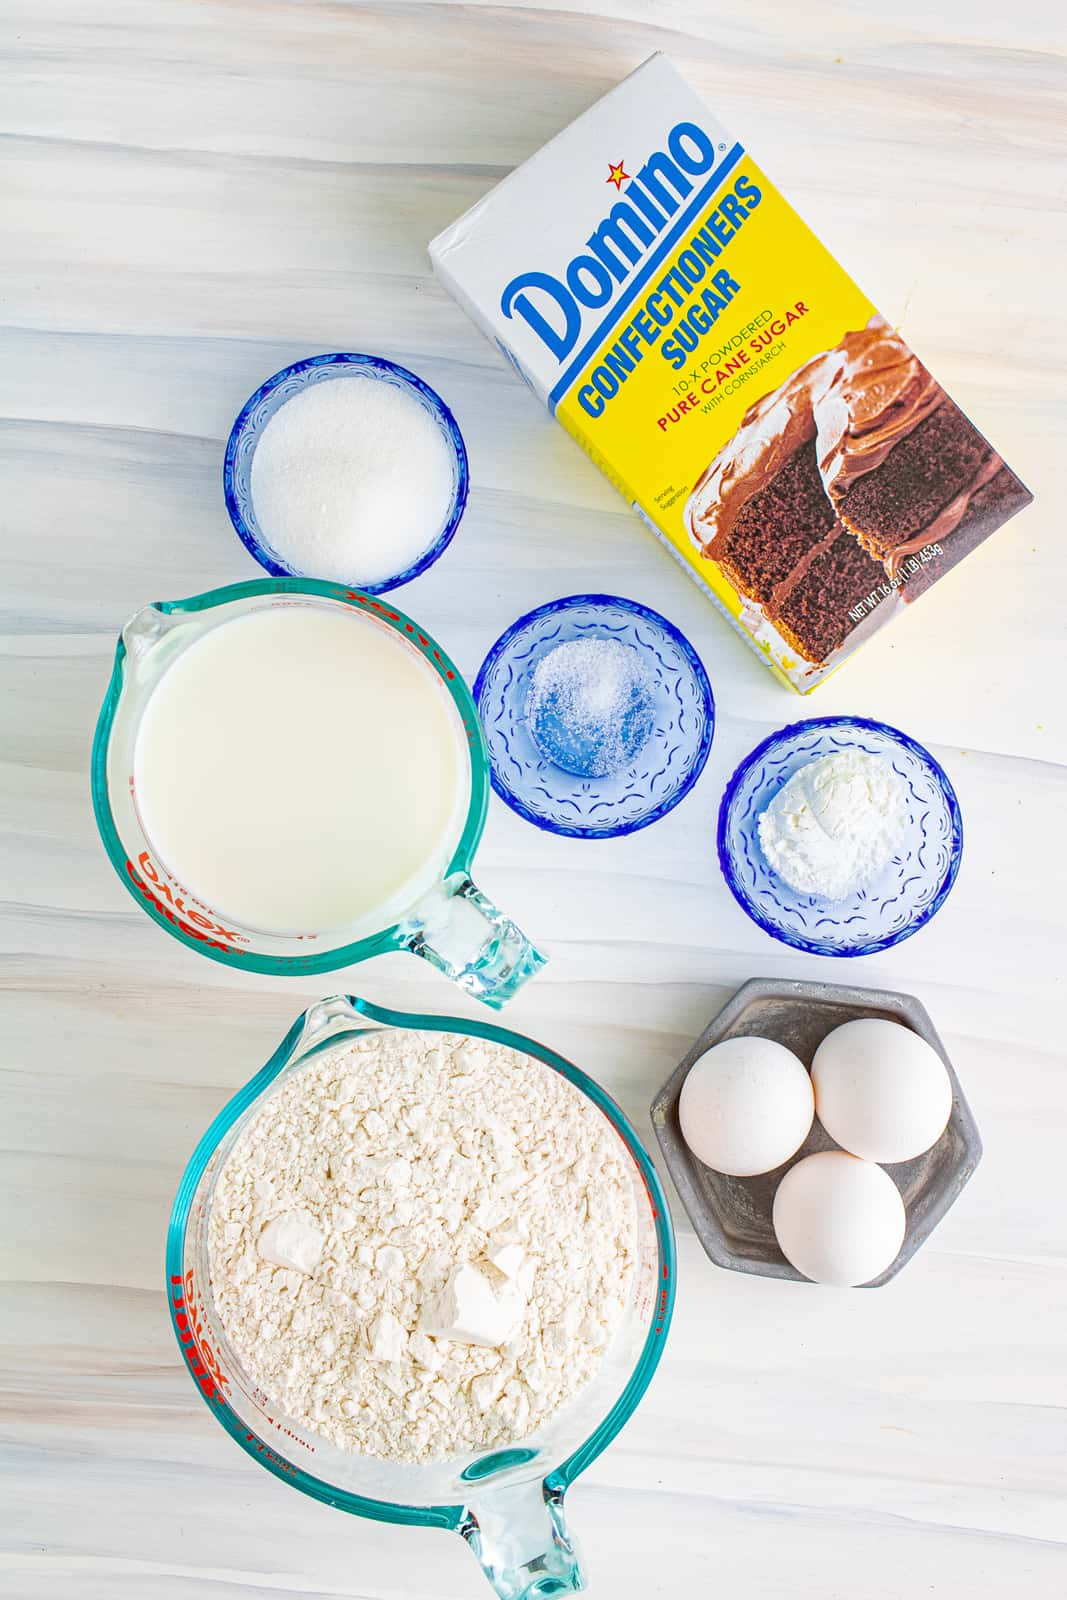 Ingredients needed to make a Funnel Cake Recipe